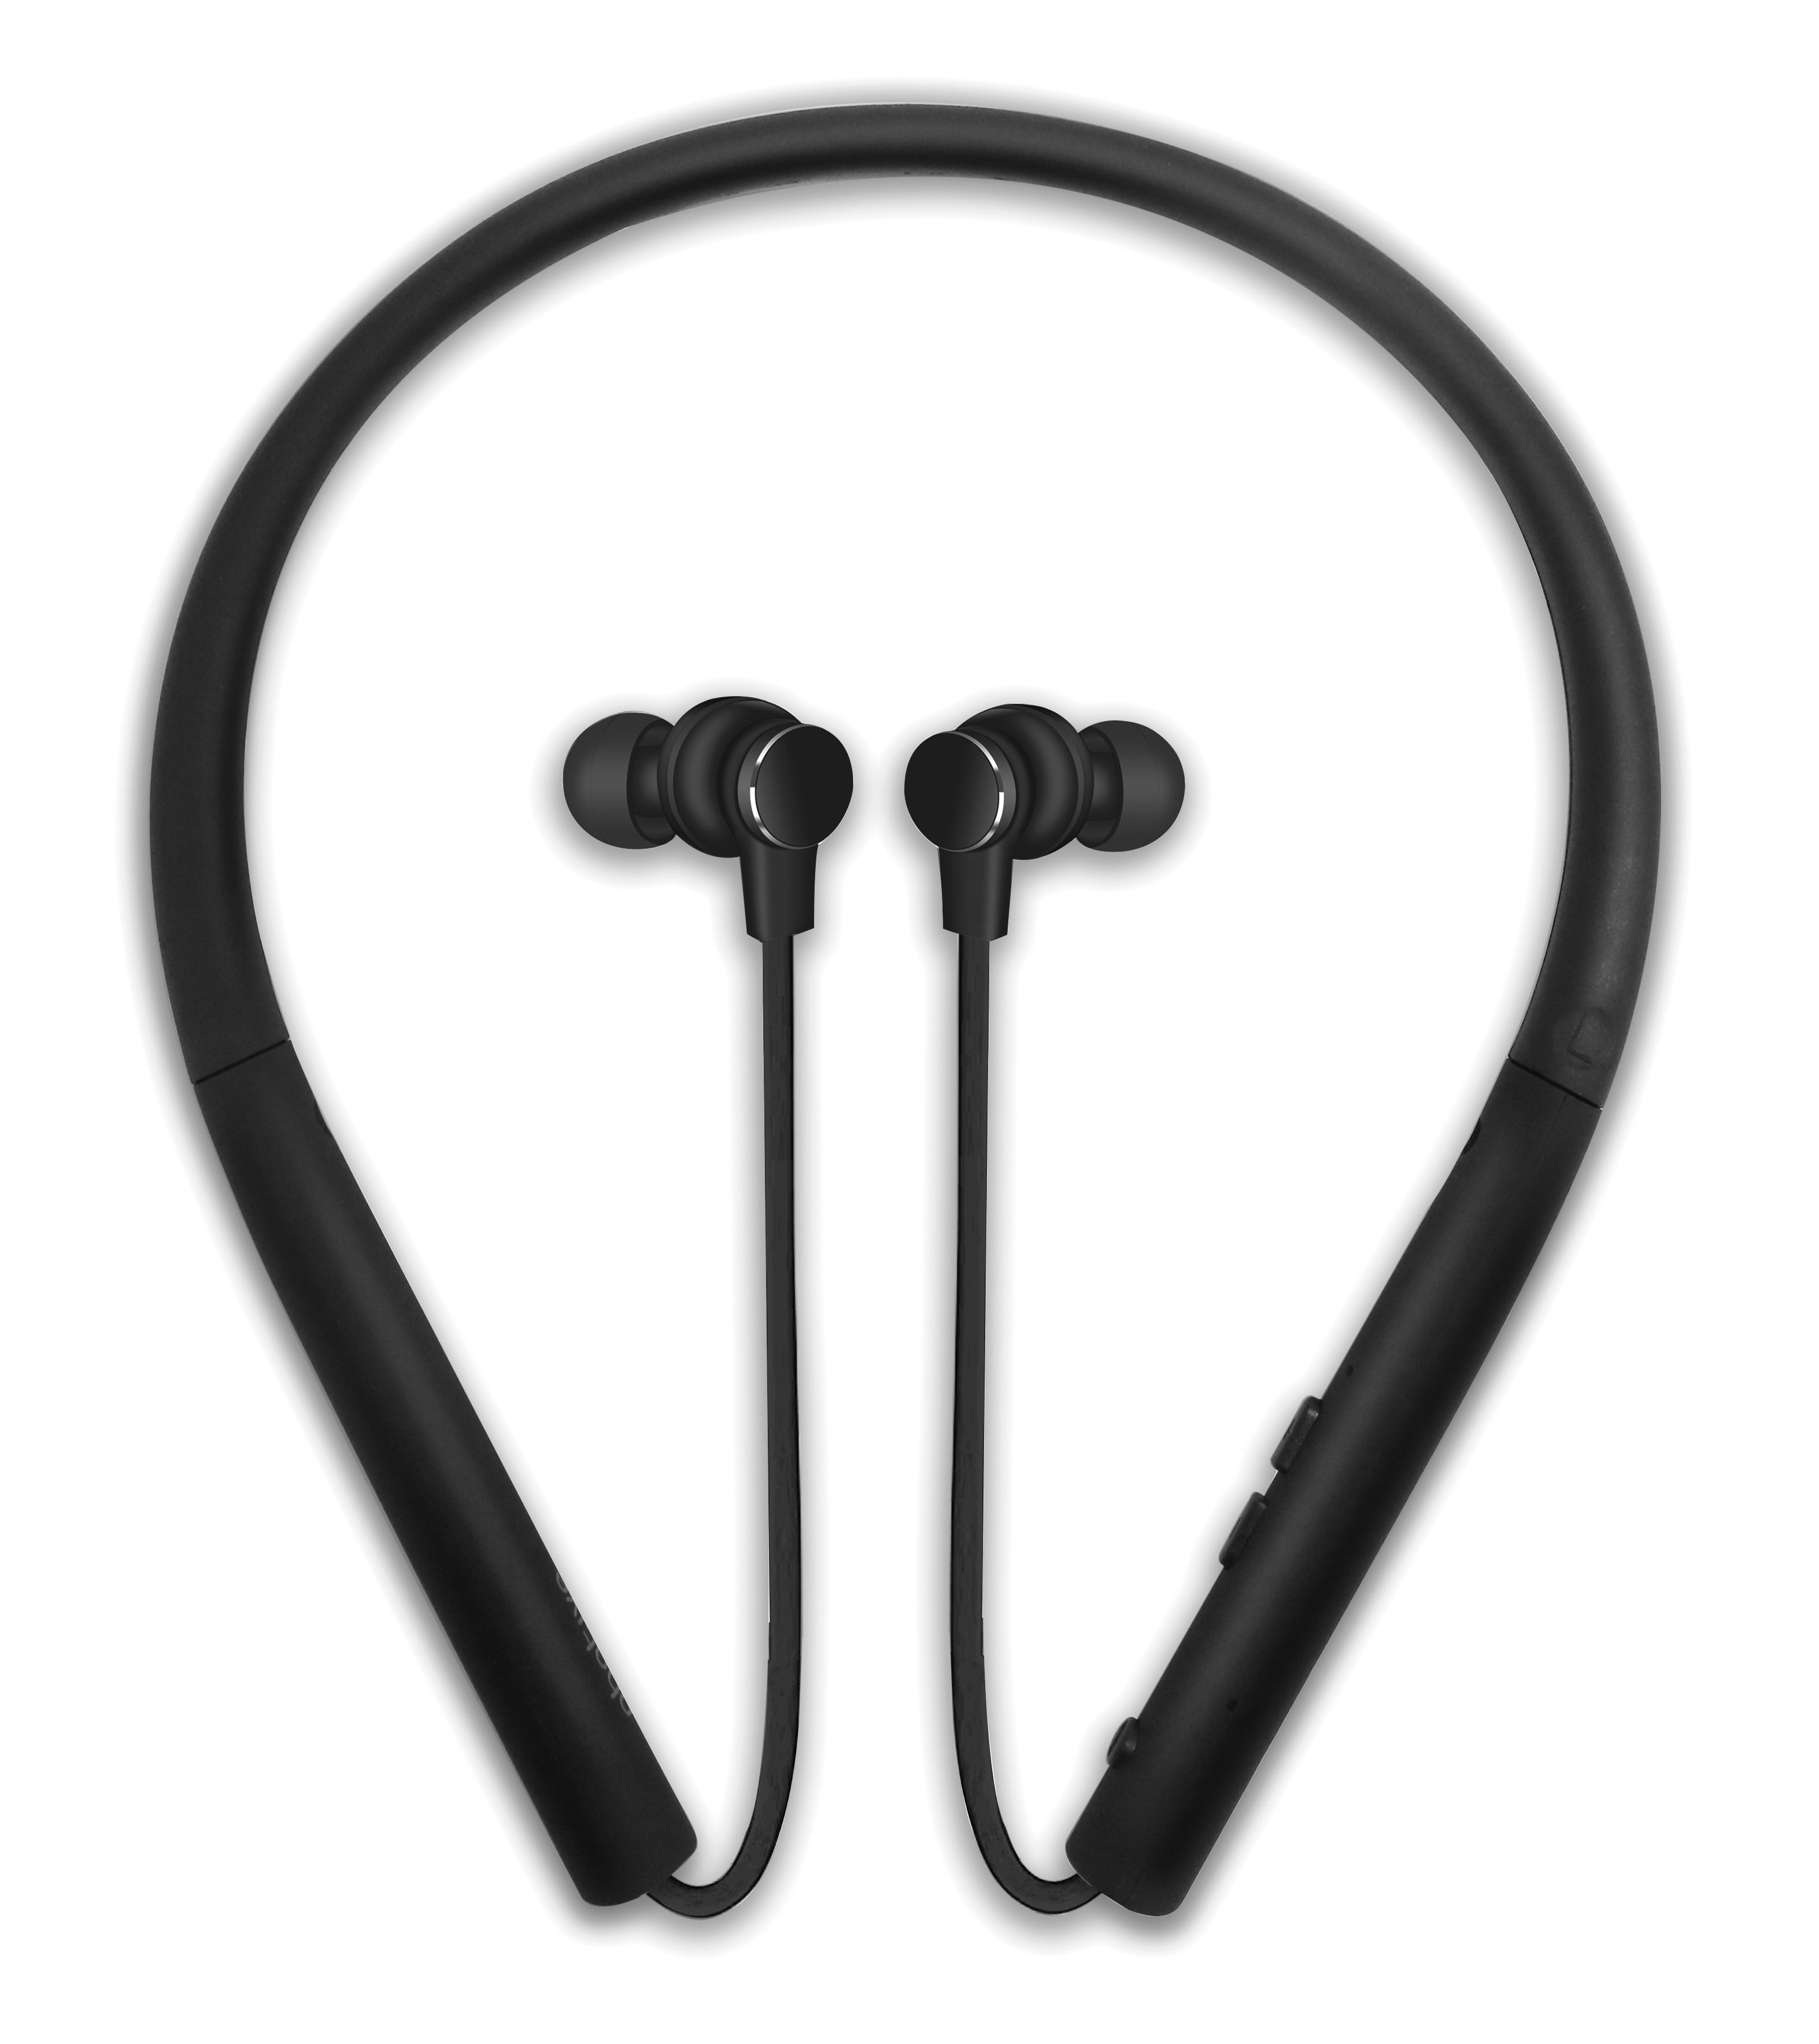 Photive Flex Wireless Bluetooth Stereo Neckband Headphones With Magnetic In Ear Earbuds Comfortable Lightweight Sweatproof And Secure Fit 12 Hour Battery And Microphone Walmart Com Walmart Com